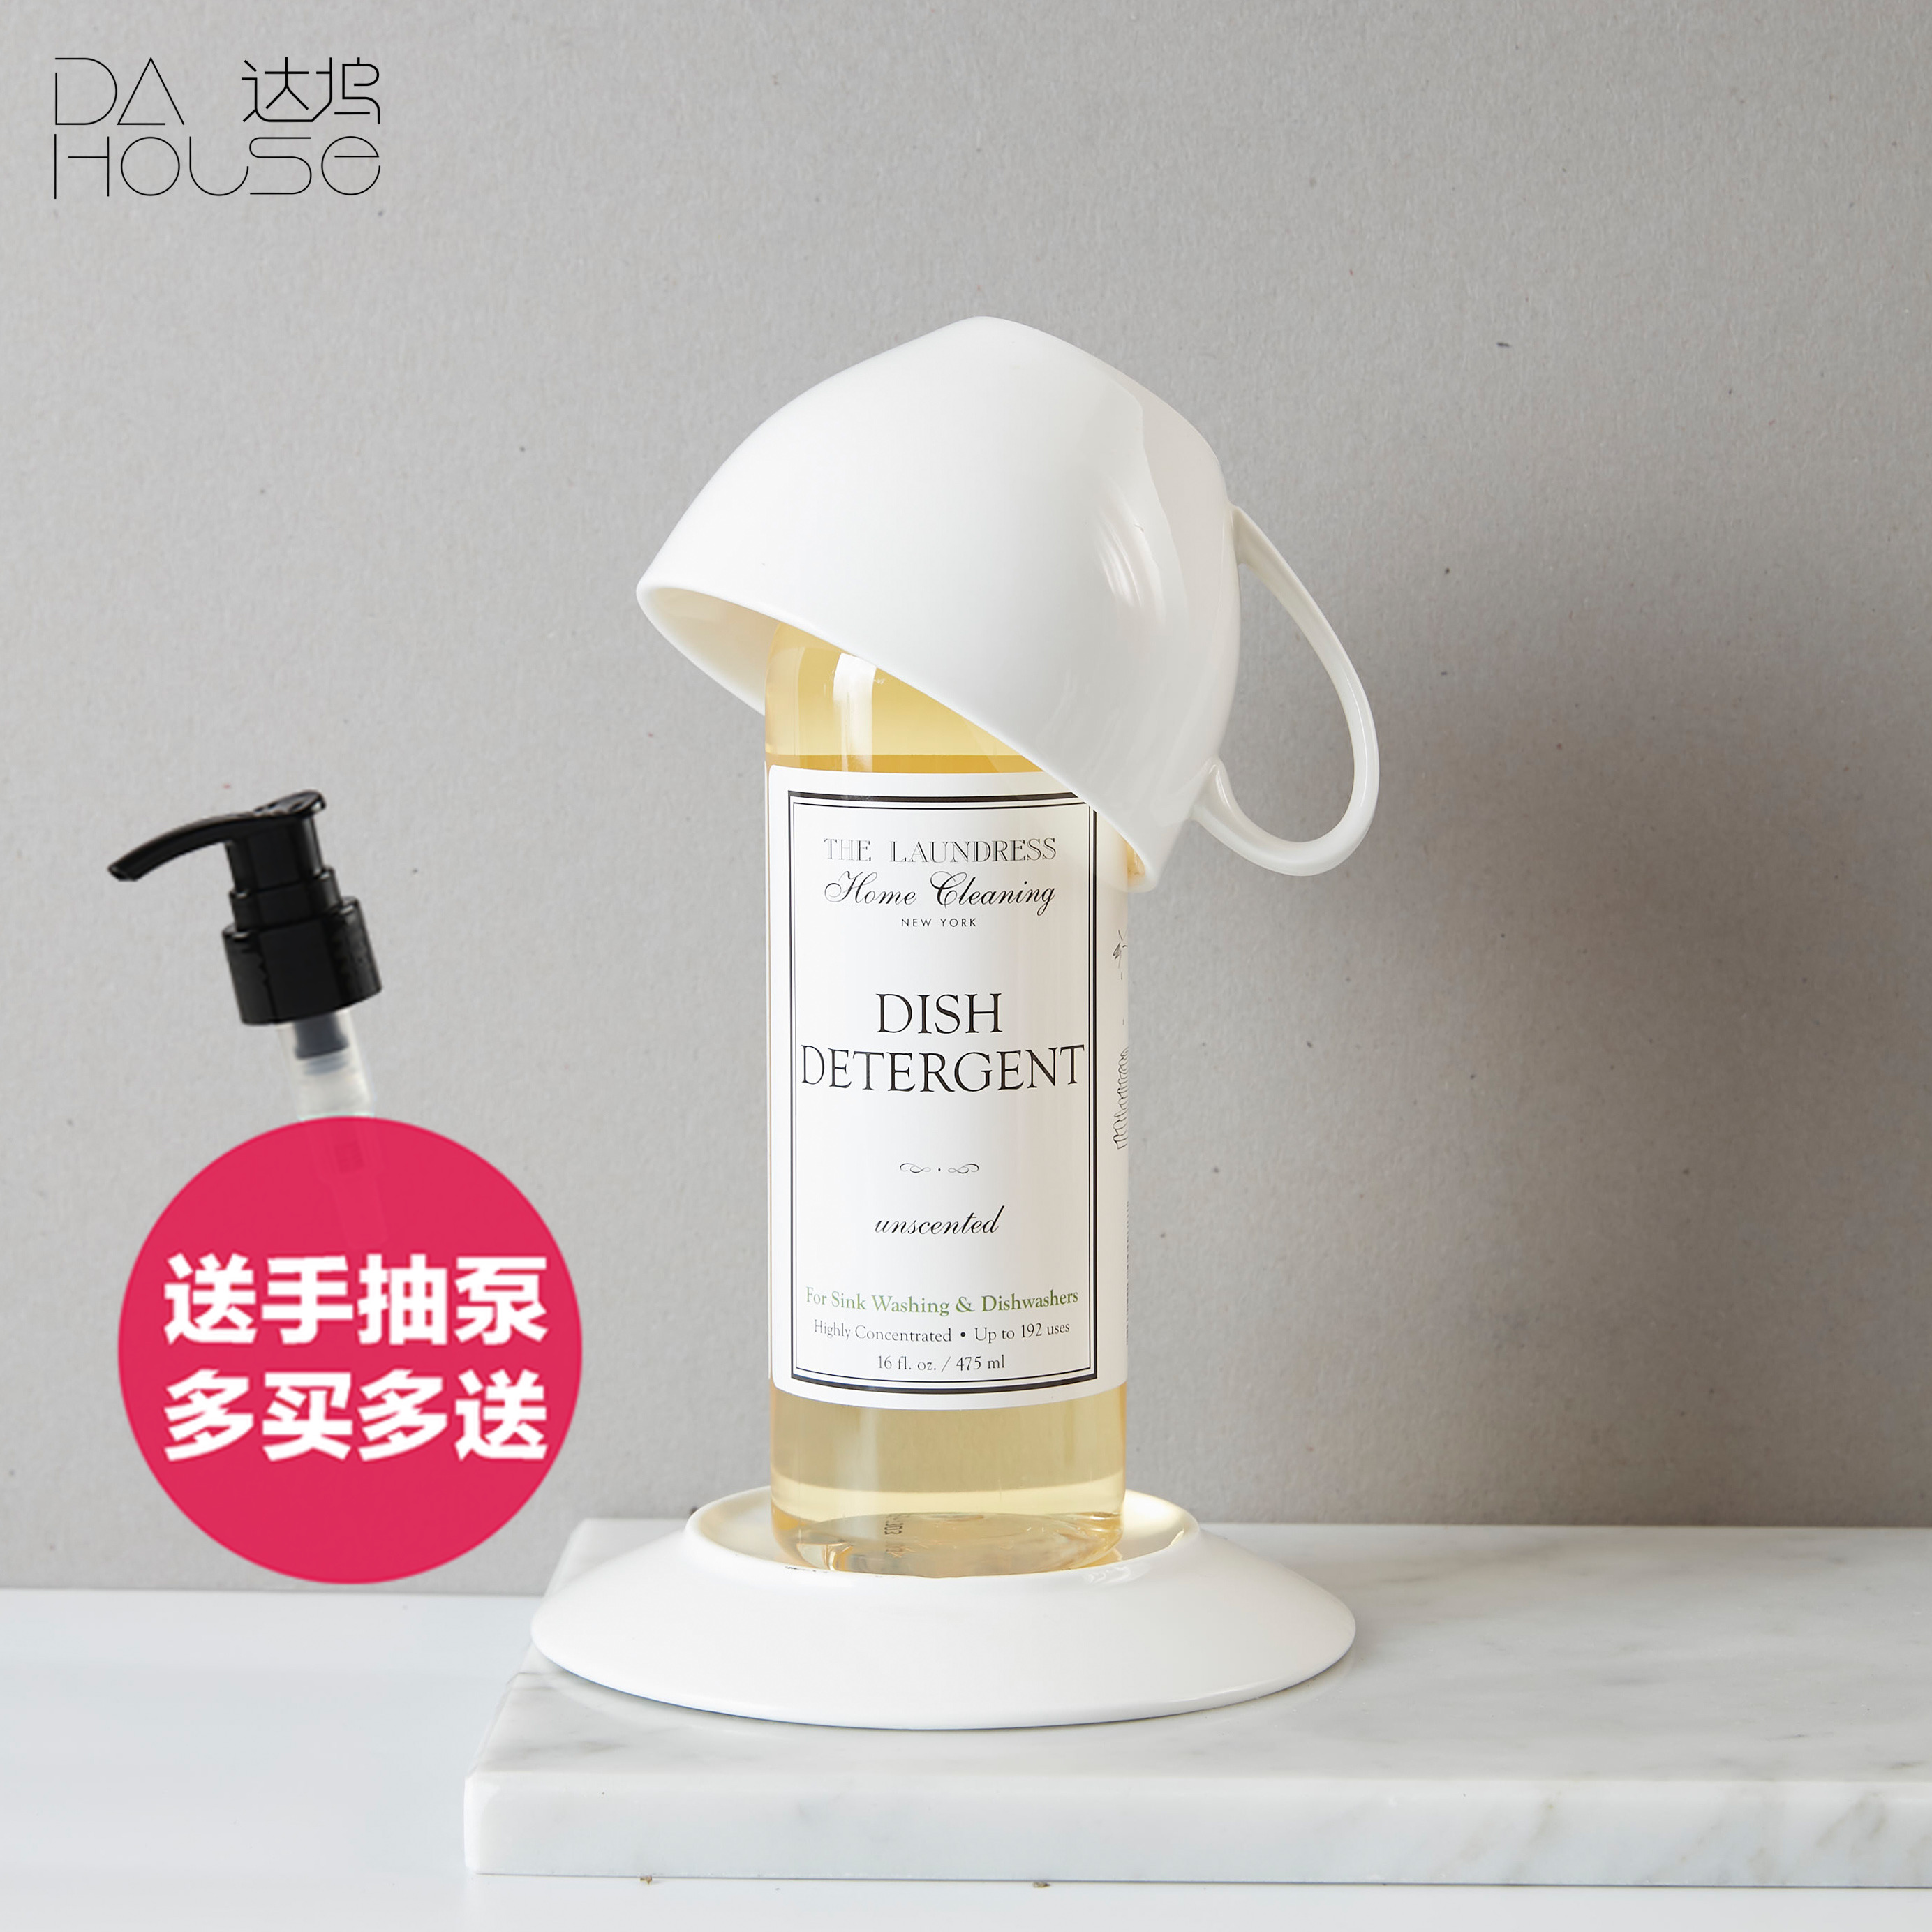 THE LAUNDRESS 濃縮型 洗潔精 天然酵素 低泡 不傷手  碗盤洗潔精